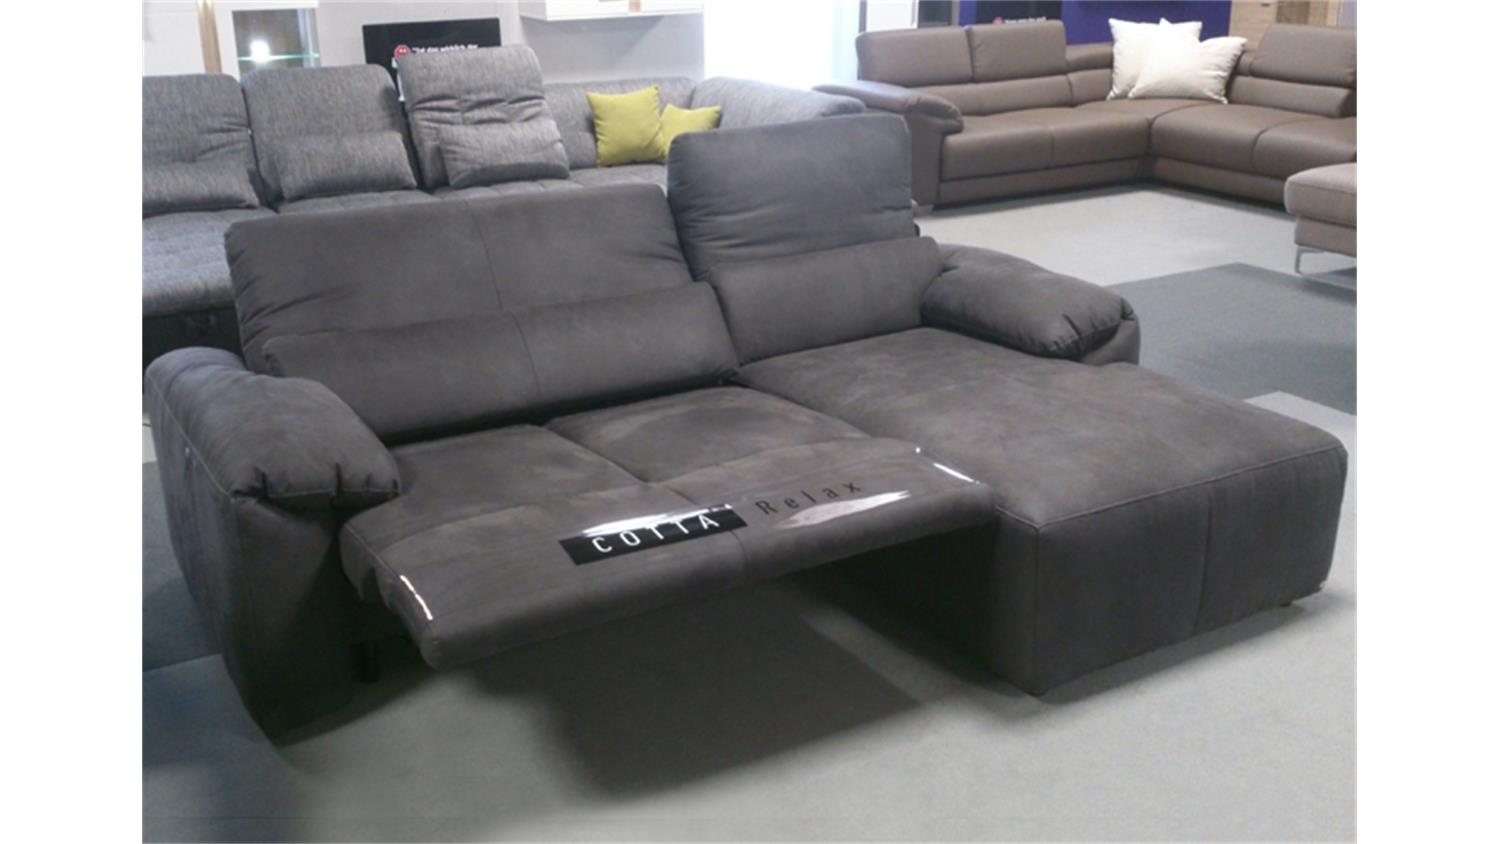 ecksofa silverstone dunkelgrau elektrische loungefunktion. Black Bedroom Furniture Sets. Home Design Ideas